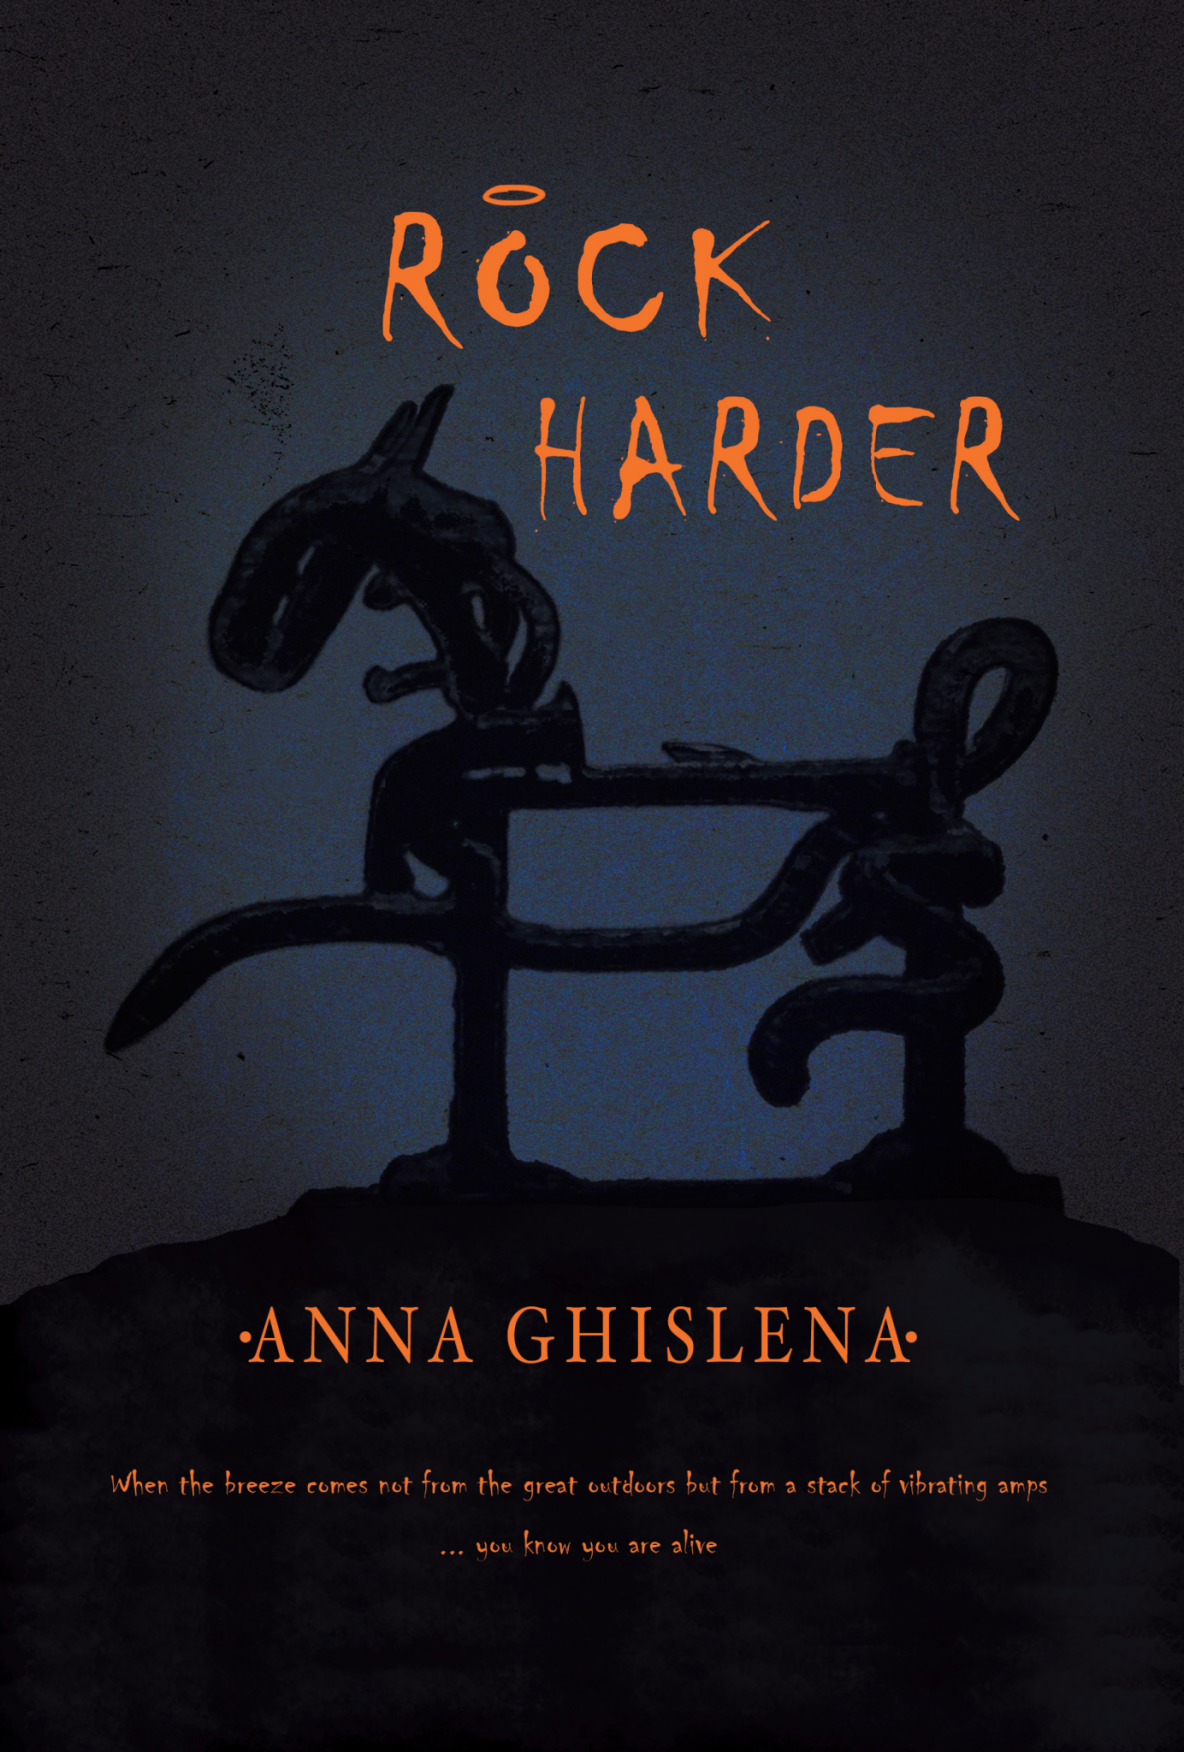 Rock Harder by Anna Ghislena